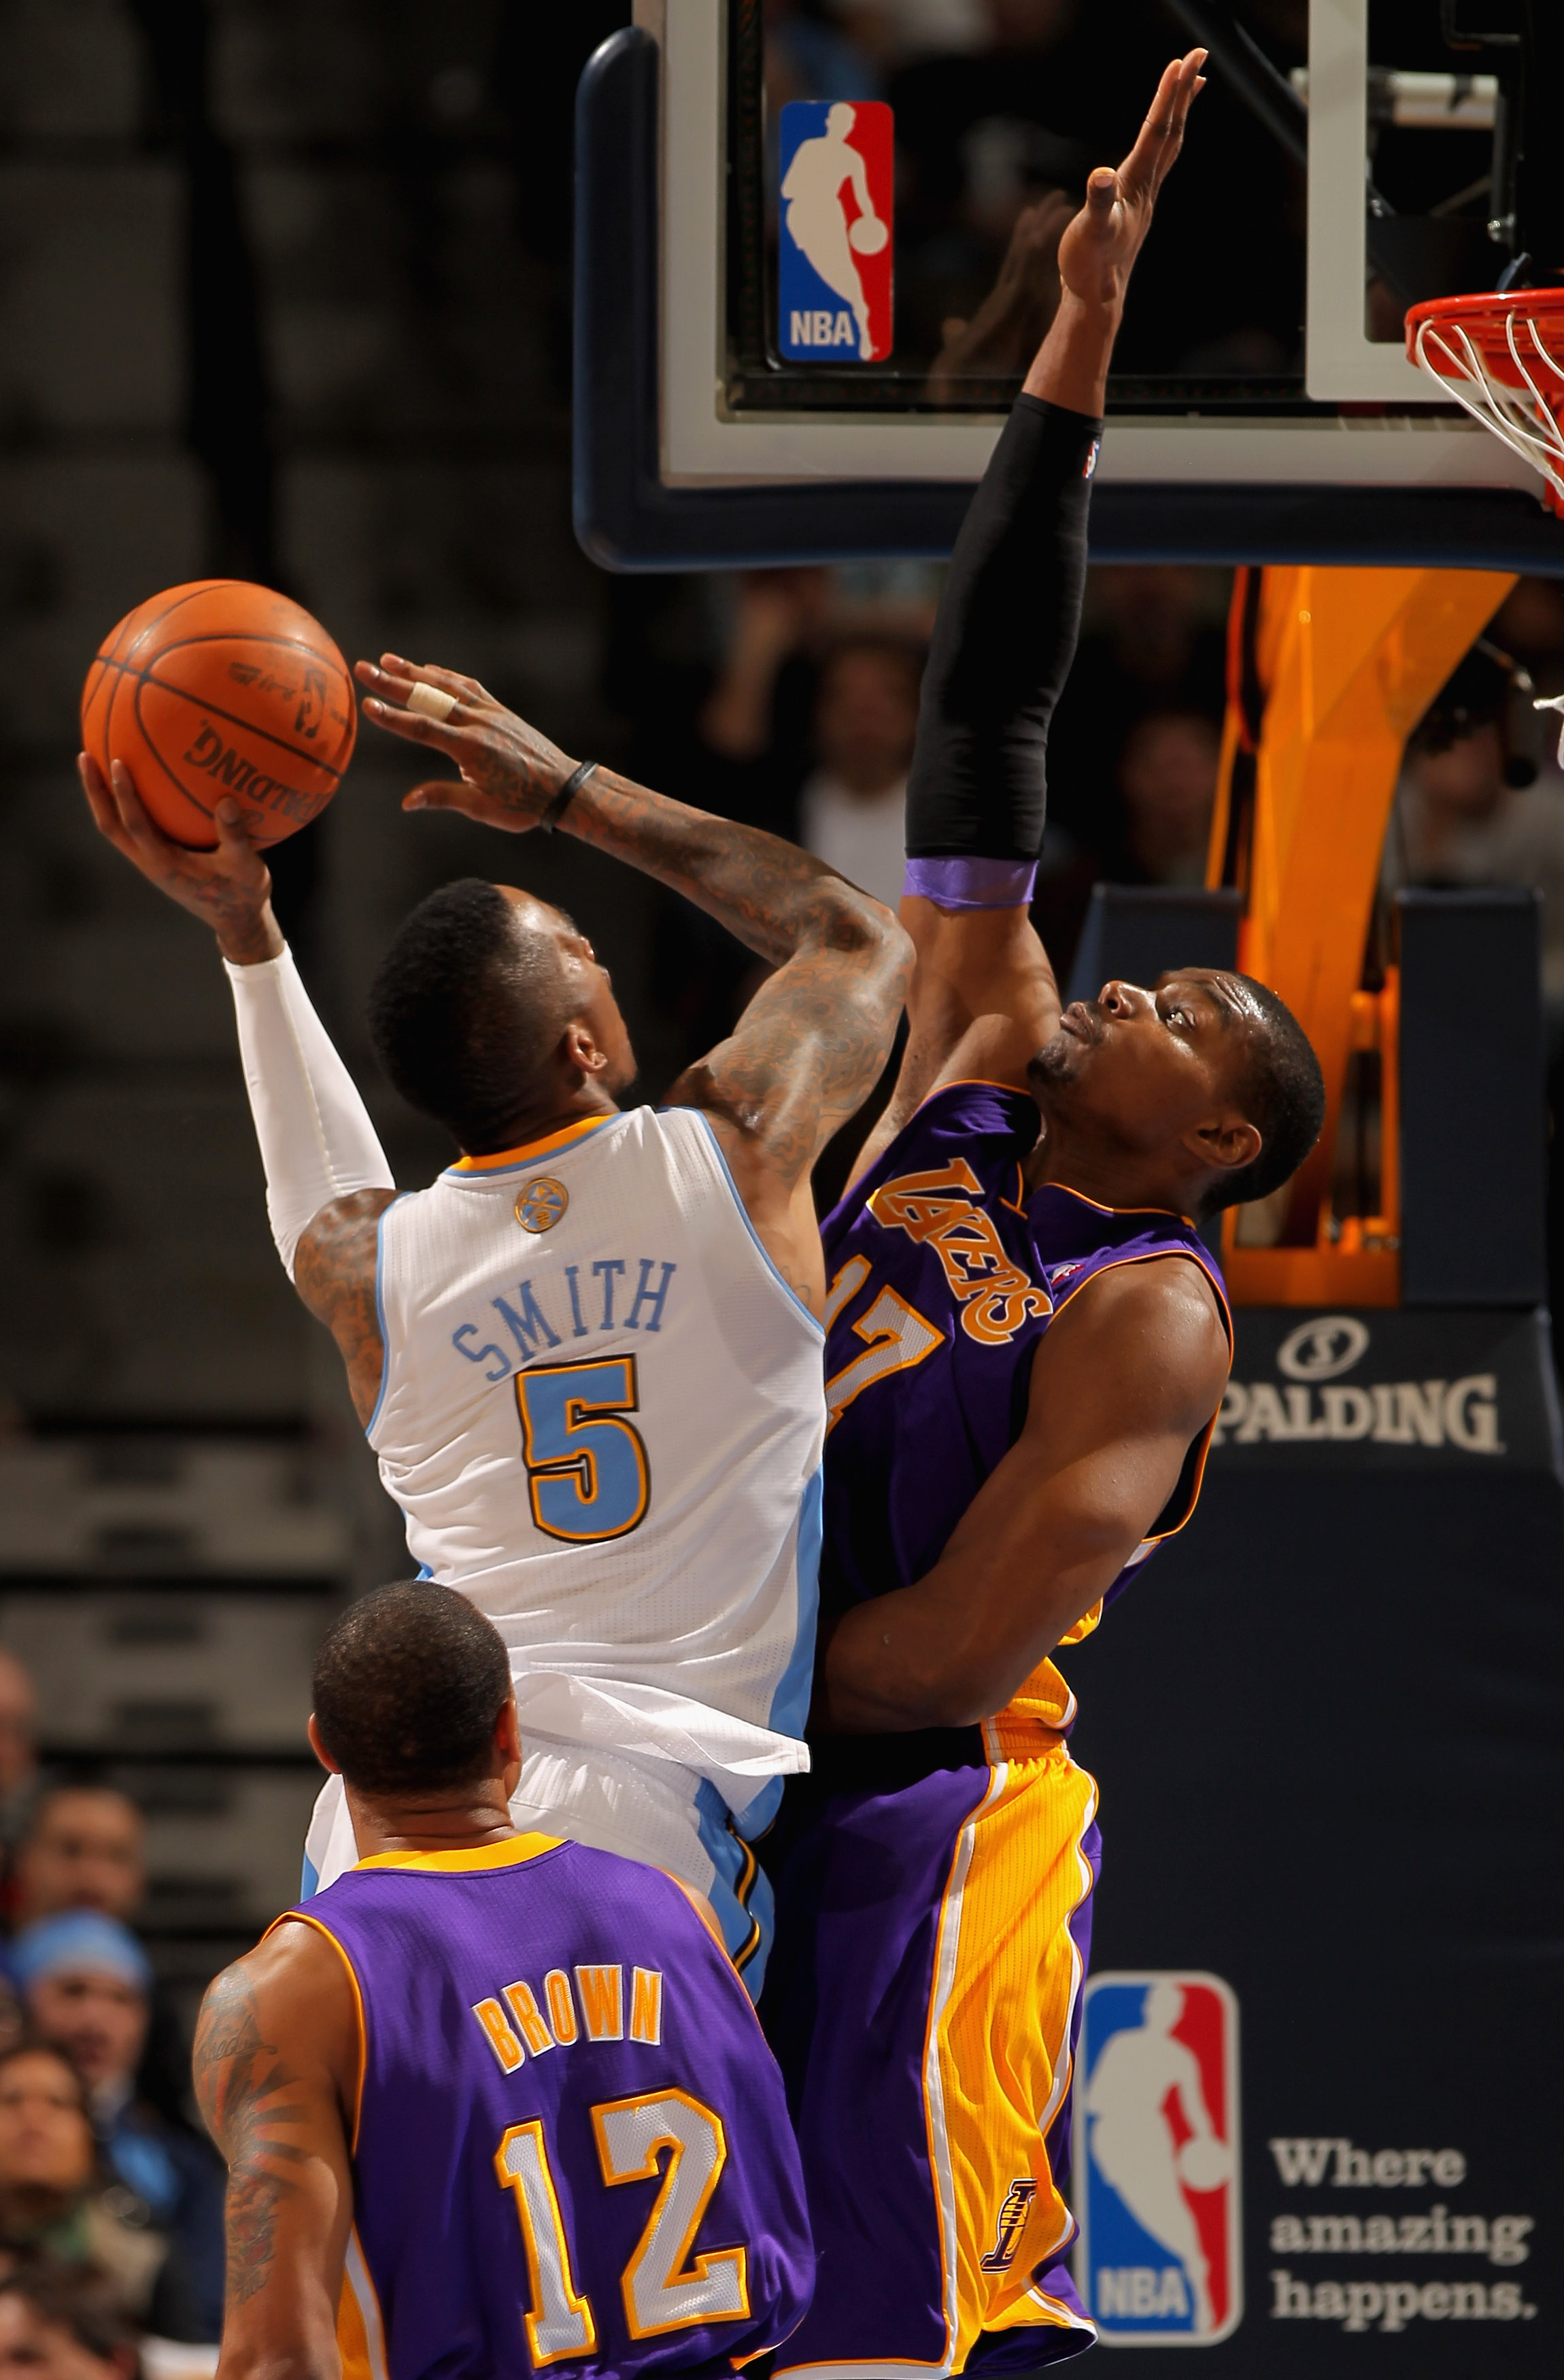 DENVER, CO - JANUARY 21:  J.R. Smith #5 of the Denver Nuggets takes a shot against Andrew Bynum #17 of the Los Angeles Lakers at the Pepsi Center on January 21, 2011 in Denver, Colorado. NOTE TO USER: User expressly acknowledges and agrees that, by downlo